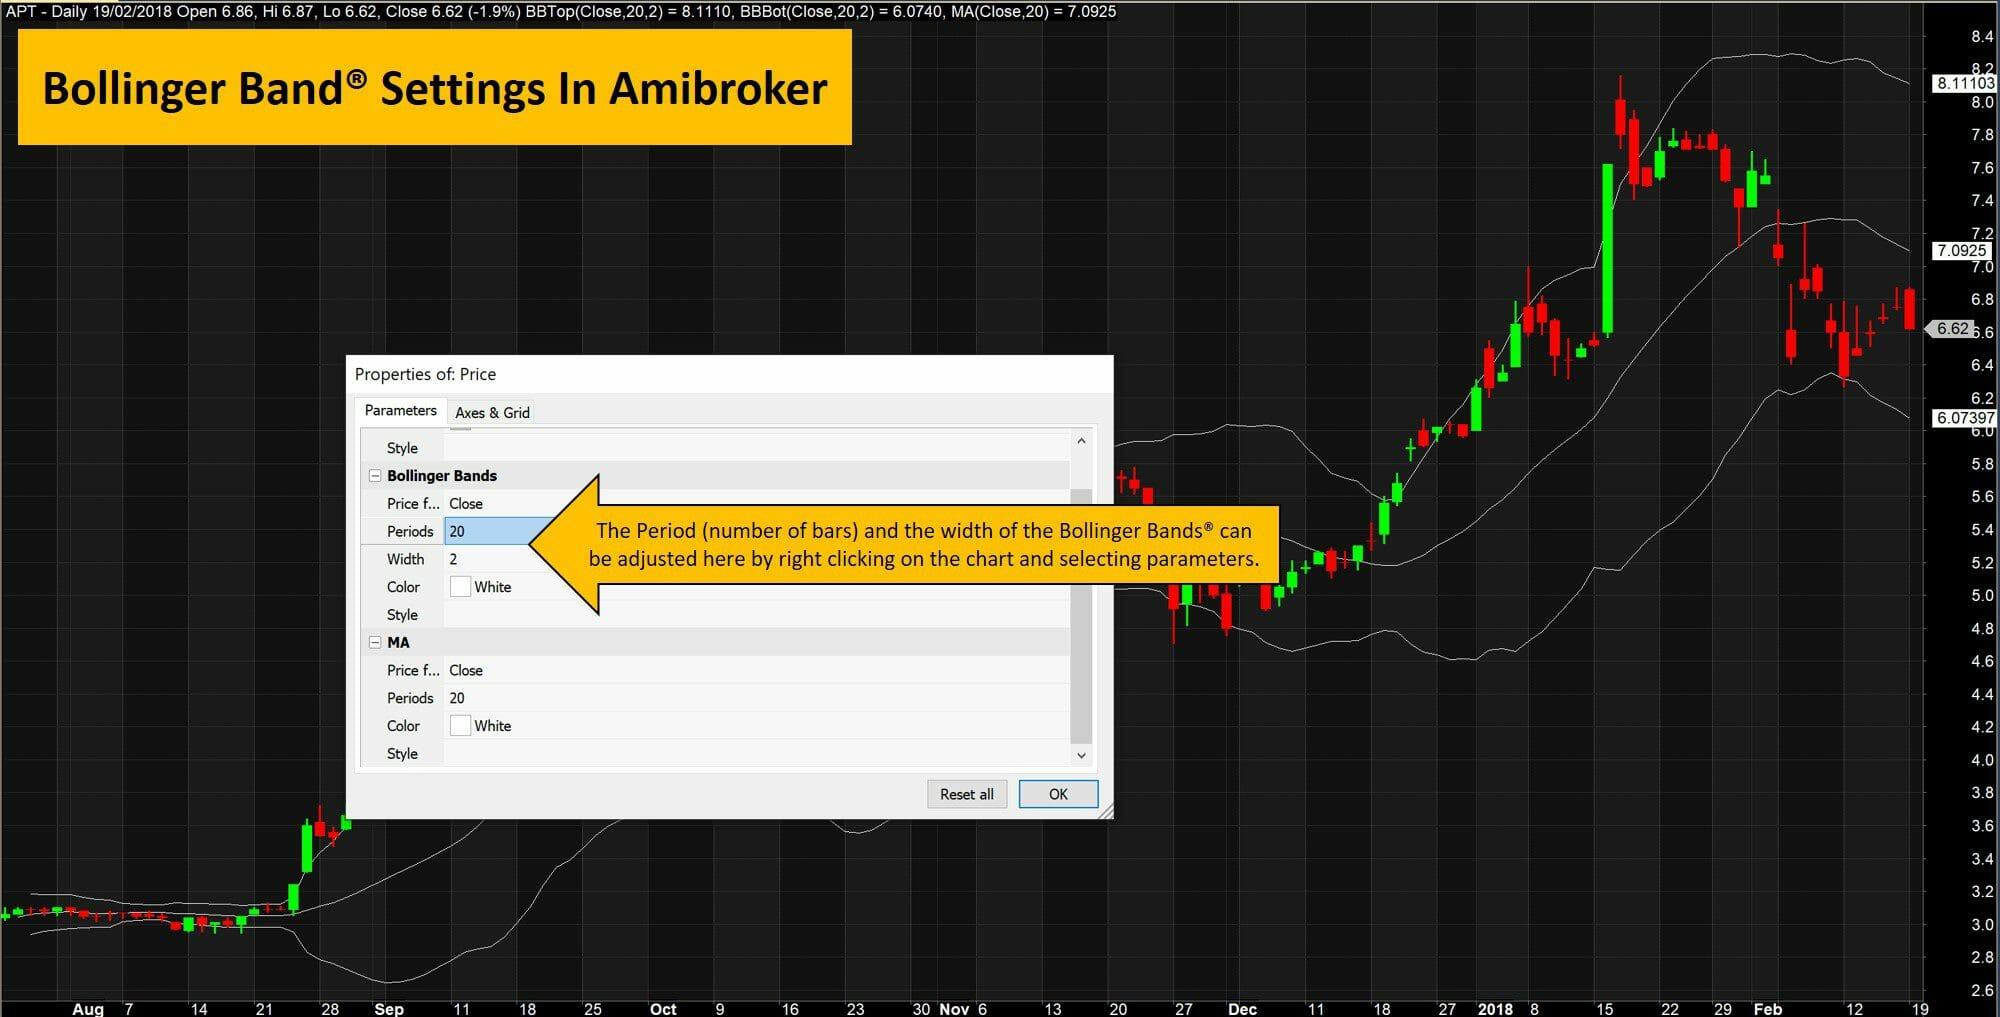 The ultimate guide to bollinger bands - adjusting bollinger band parameters in Amibroker charts